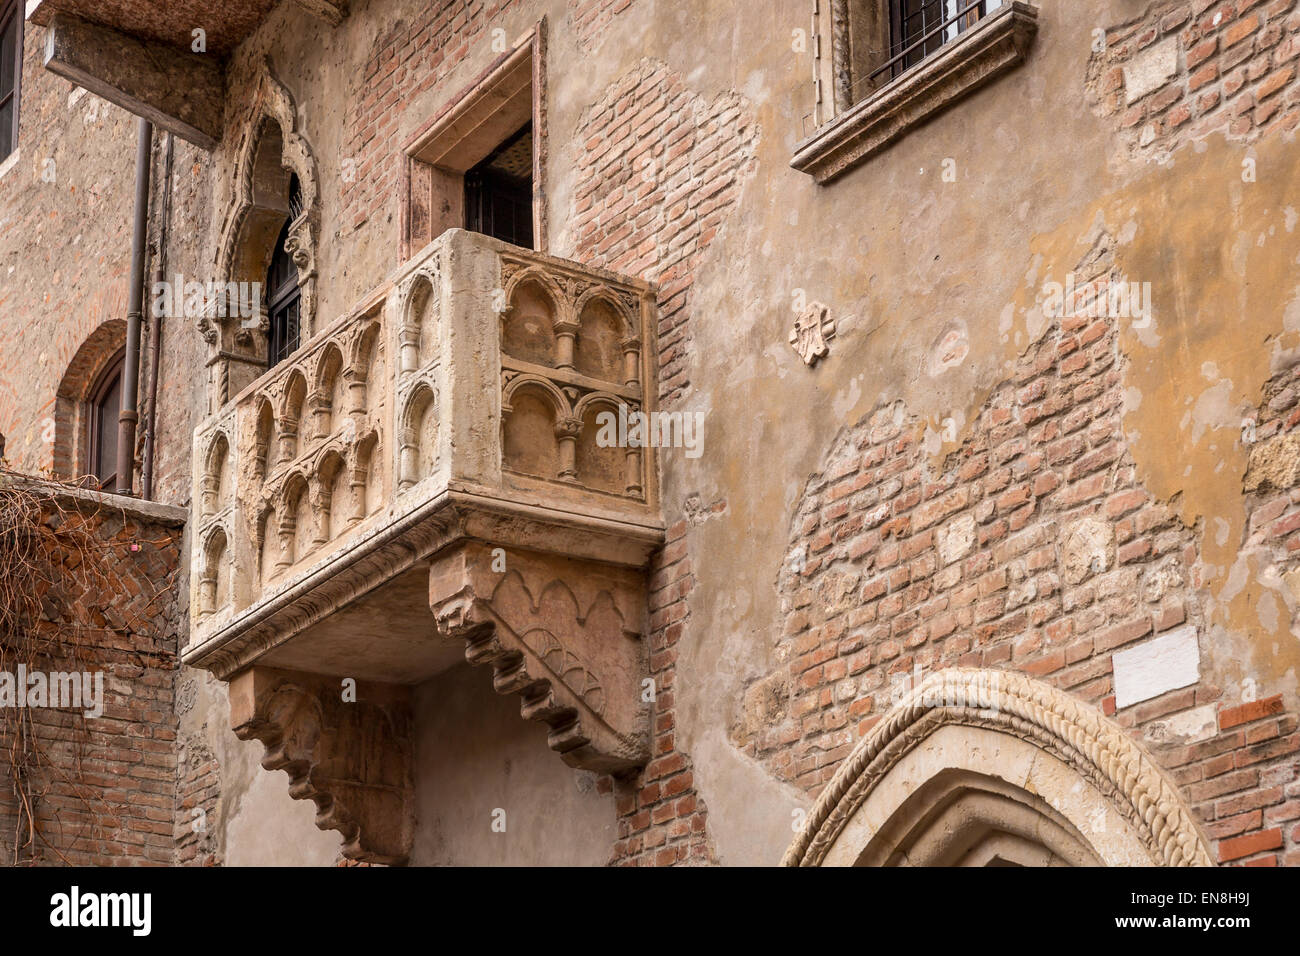 Juliet's balcony, Verona, UNESCO World Heritage Site, Veneto, Italy - Stock Image